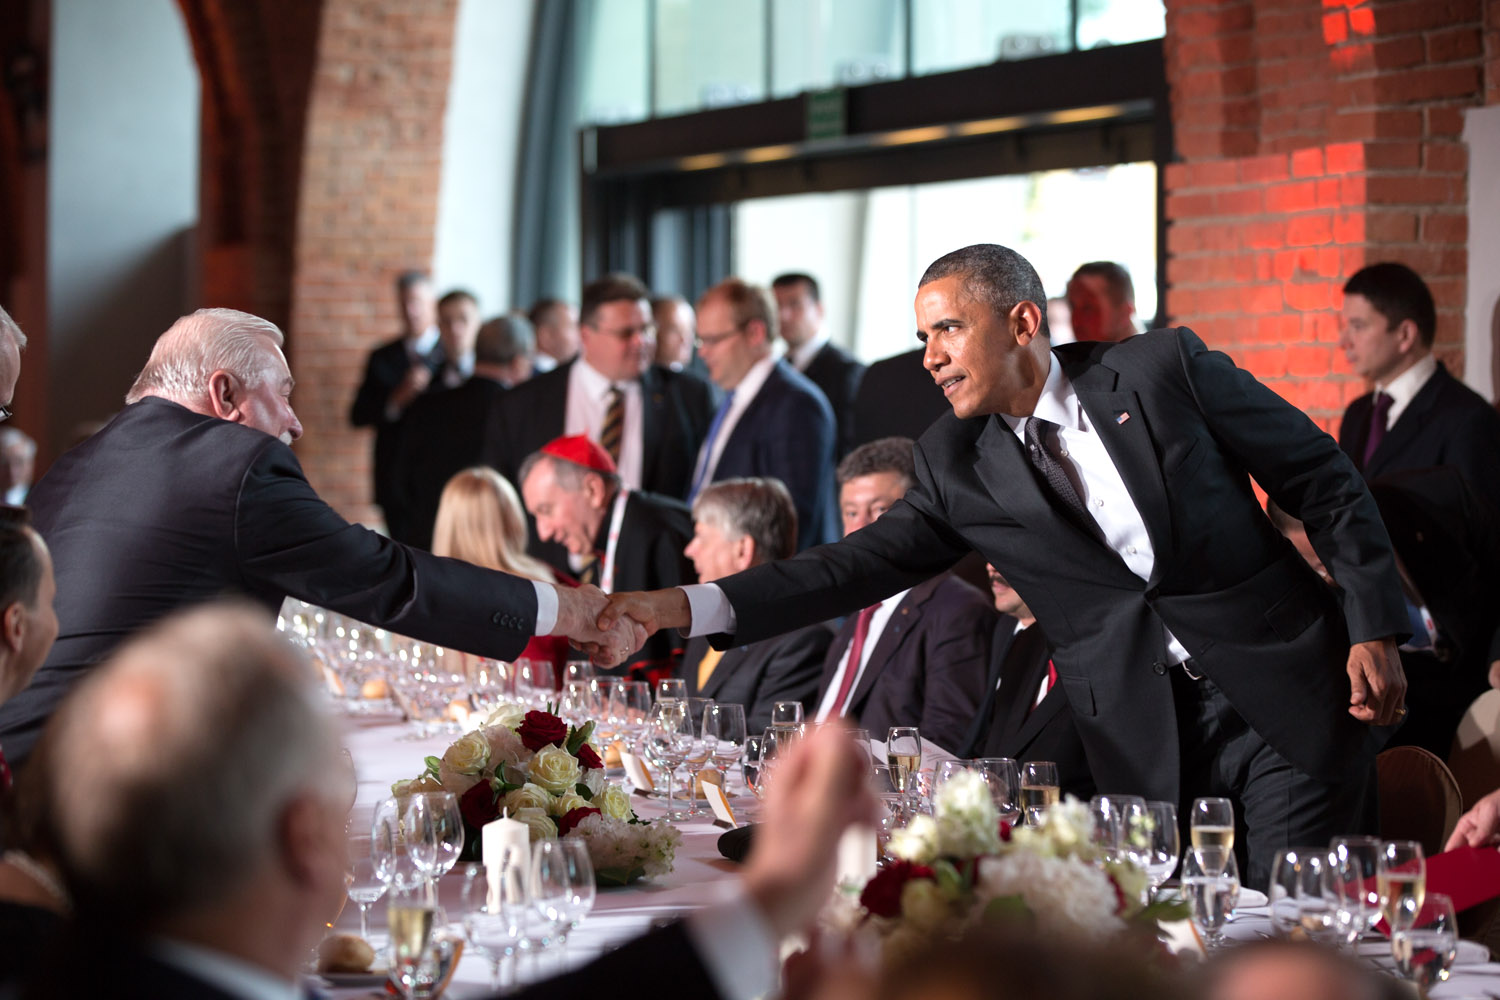 President Barack Obama attends an official Solidarity Dinner hosted by President Bronislaw Komorowski of Poland